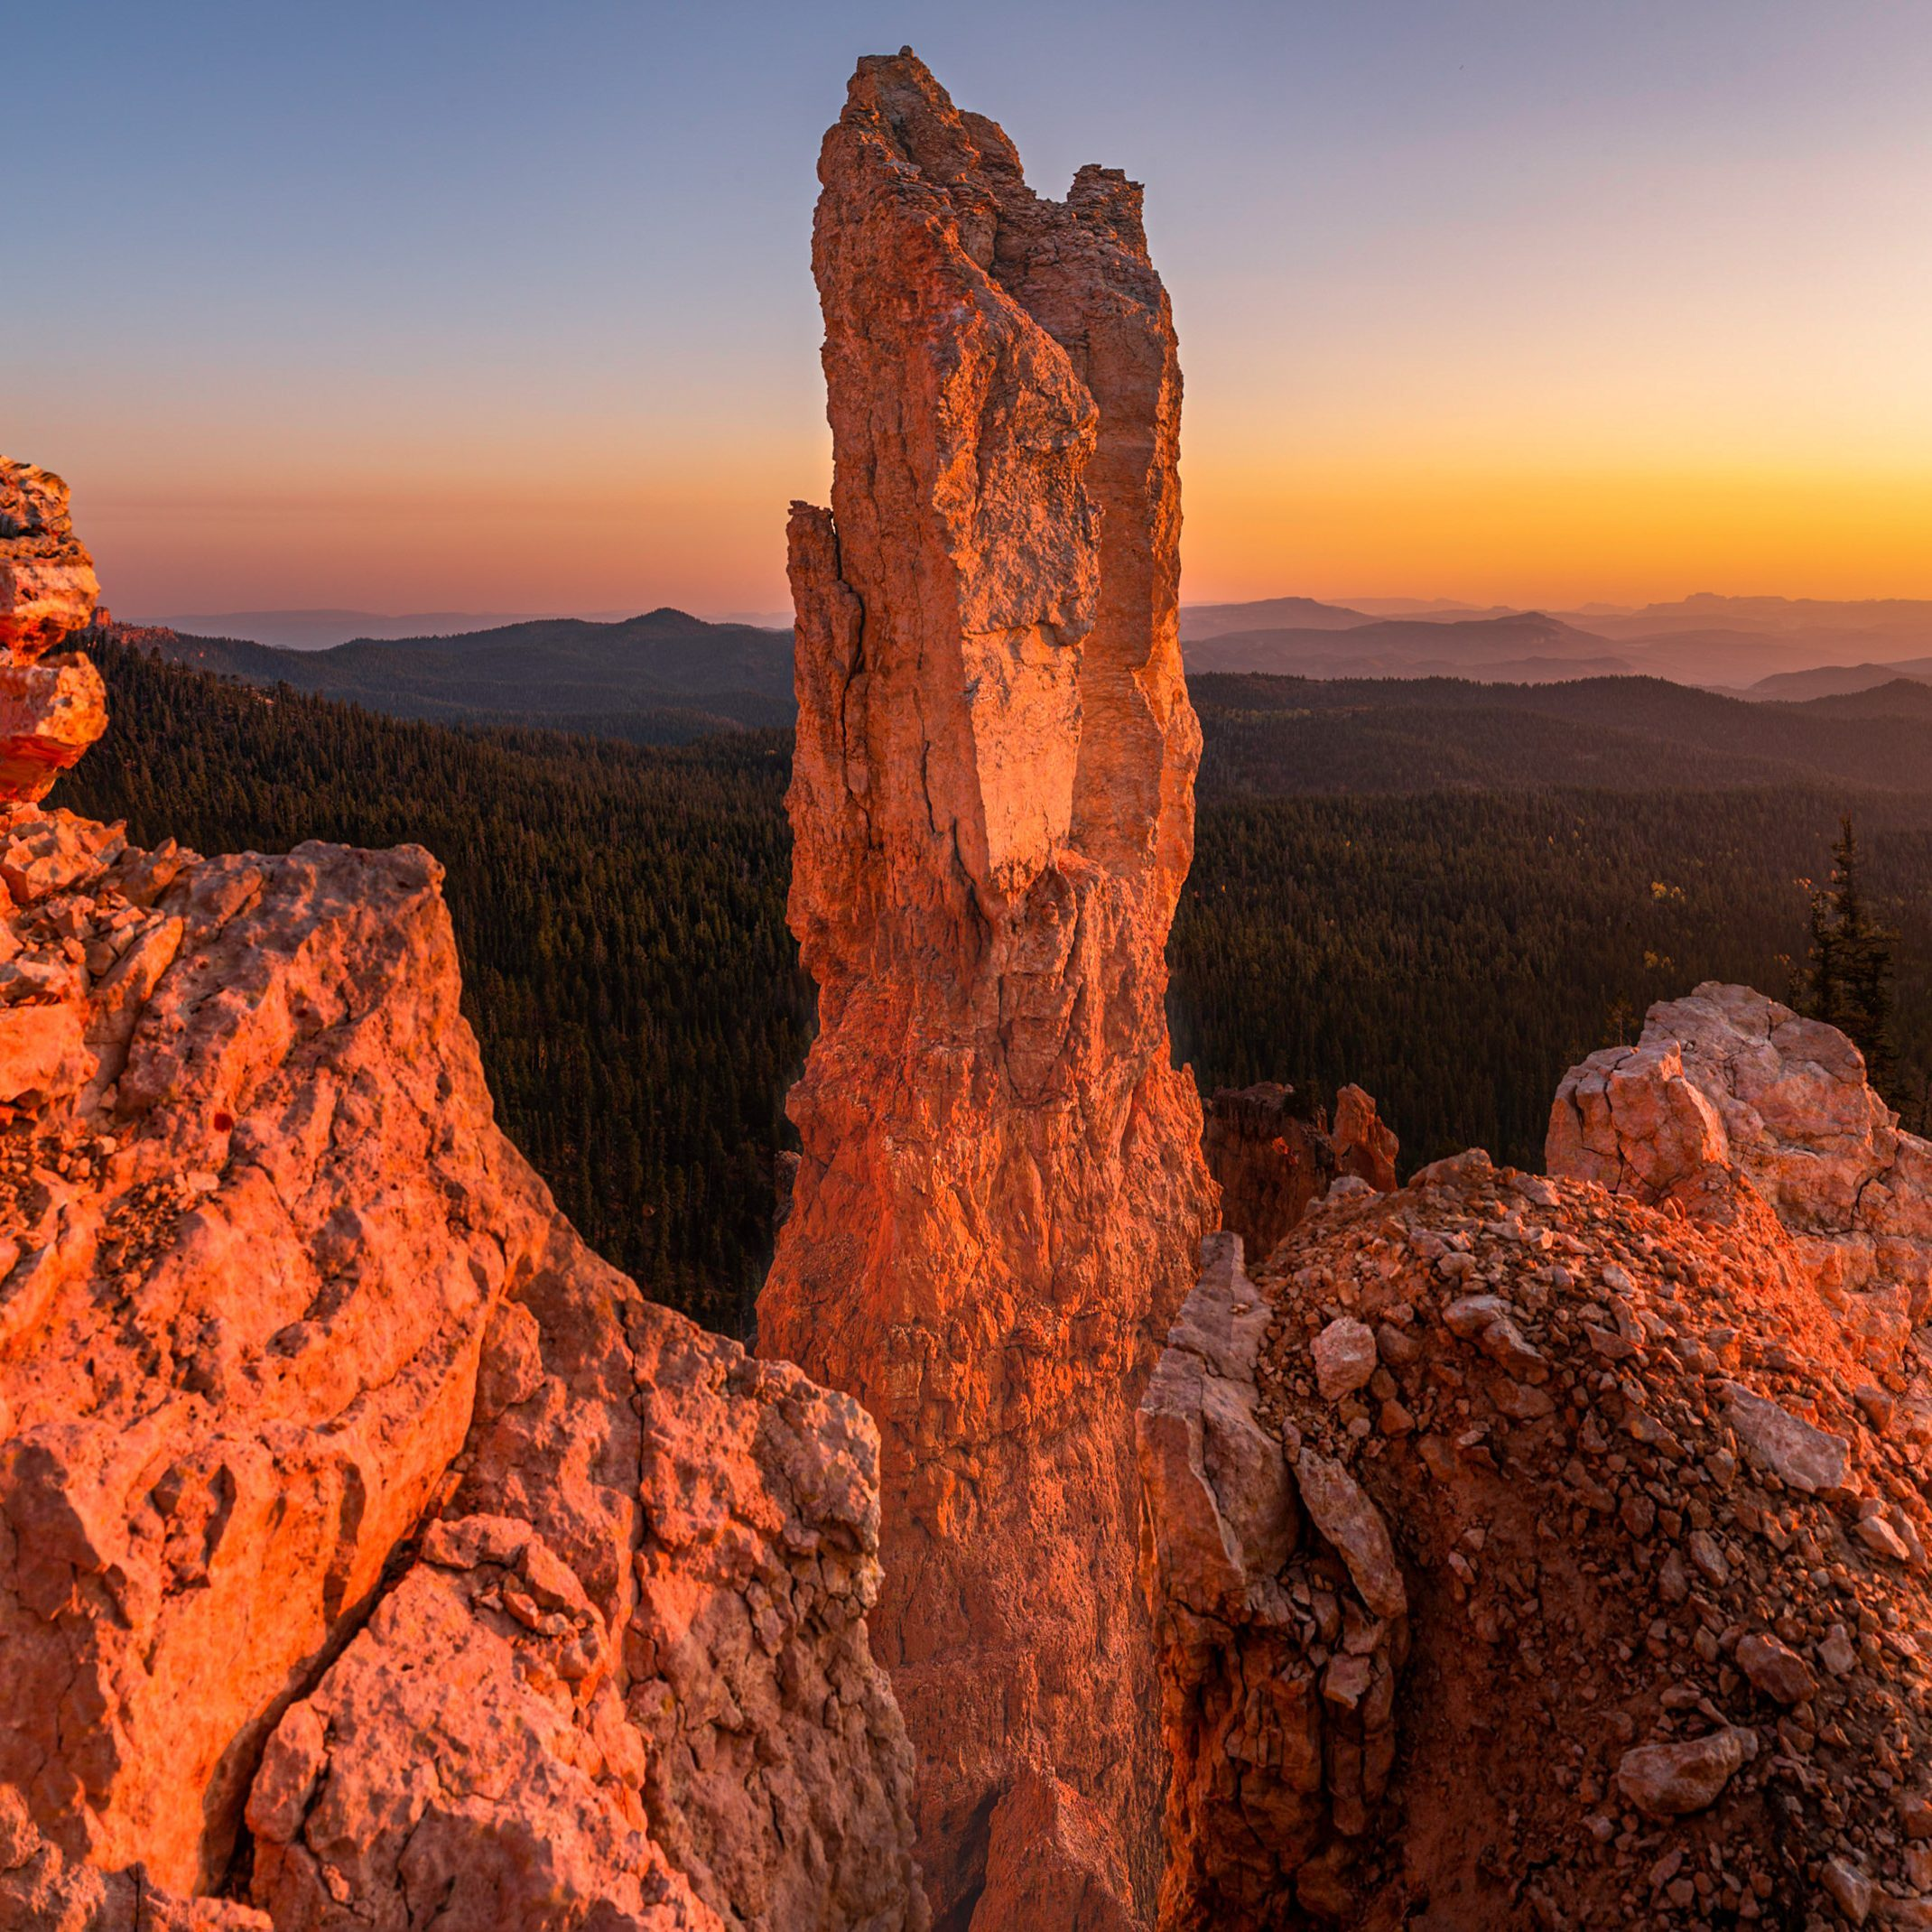 Utah Photography Workshops. A sandstone tower at sunset in Southern Utah.